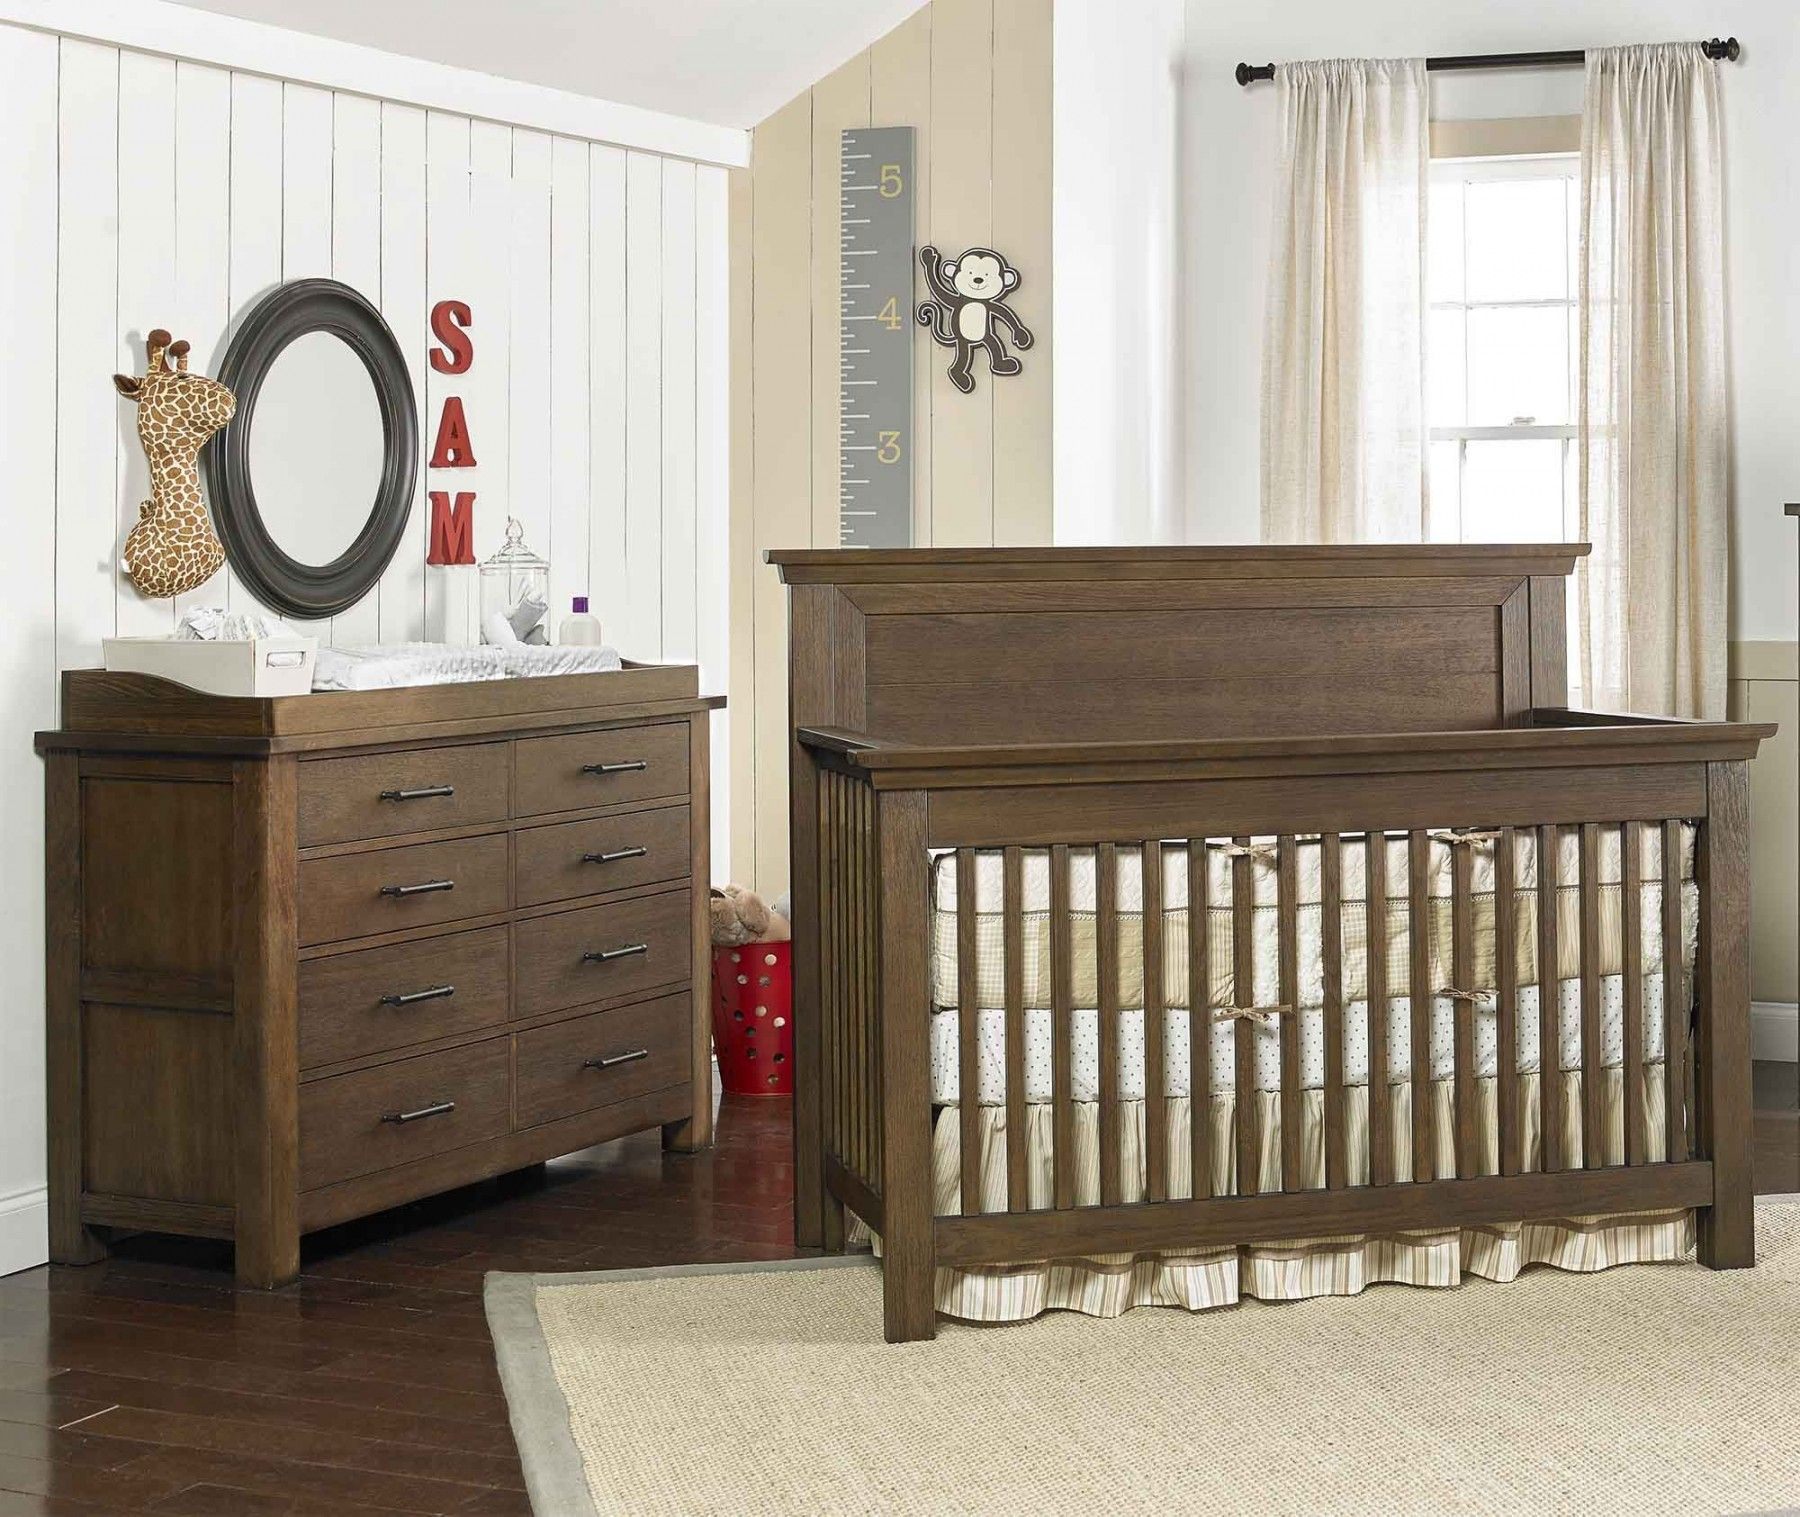 Dolce Babi Lucca 2 Piece Nursery Set With Flat Top In Seashell